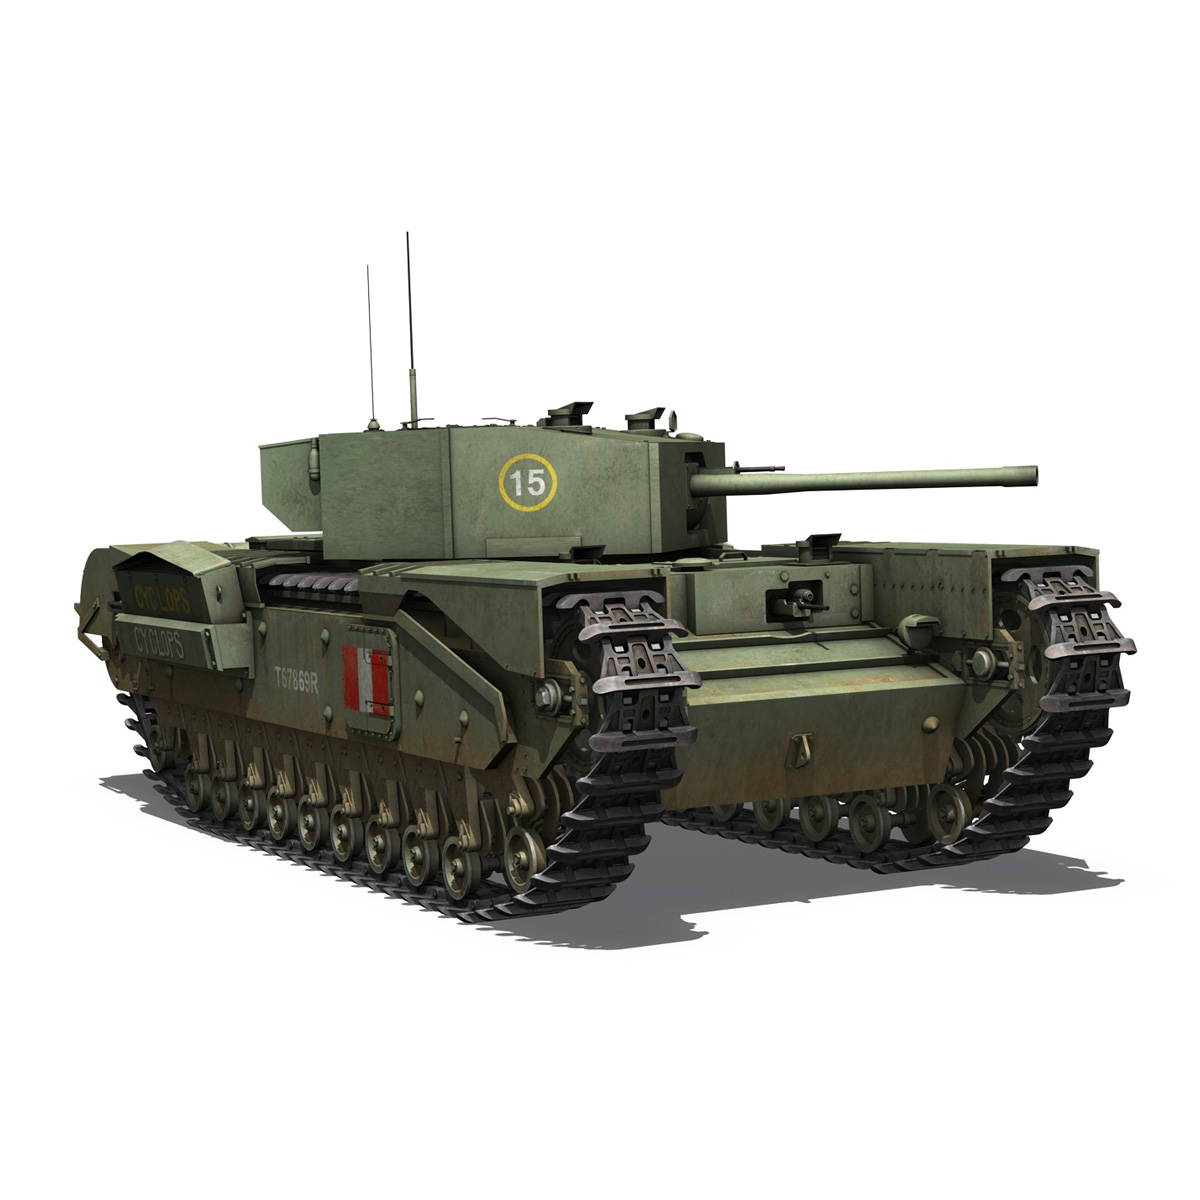 churchill mk.iii - cyclops 3d model 3ds fbx c4d lwo obj 270904